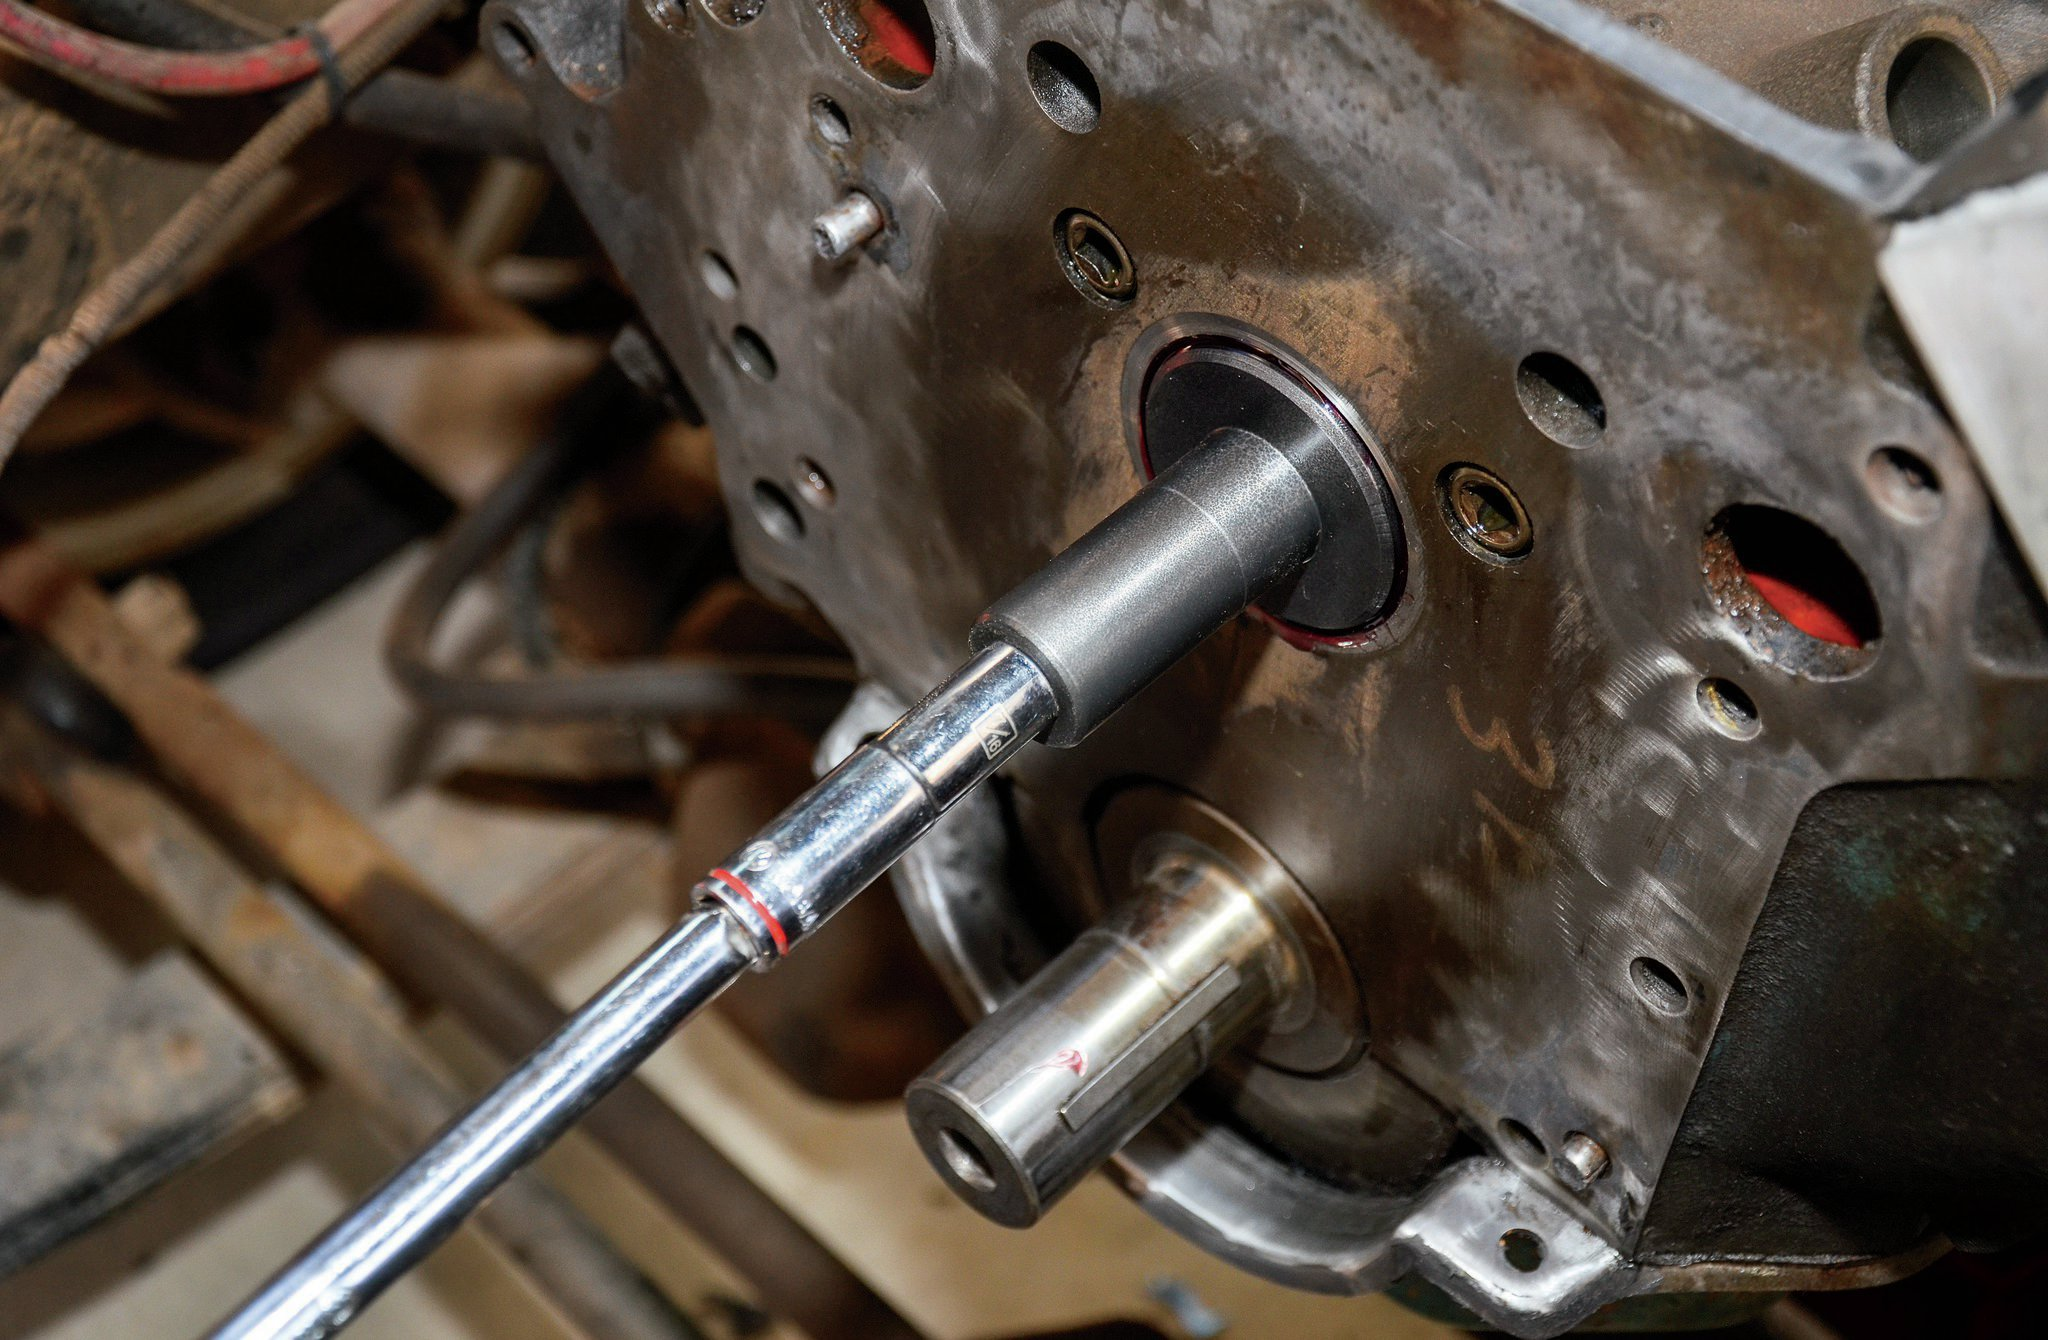 """Once we got the cam almost all the way installed, our friend, Doug (who is a full-time mechanic that tolerates our foolishness), said we could make an impromptu cam installation tool with a long stud or bold, a socket that fit over the stud (or bolt), and an extension. This """"tool"""" helps you get the leverage on the cam to get it that last few inches into the cam bearings."""